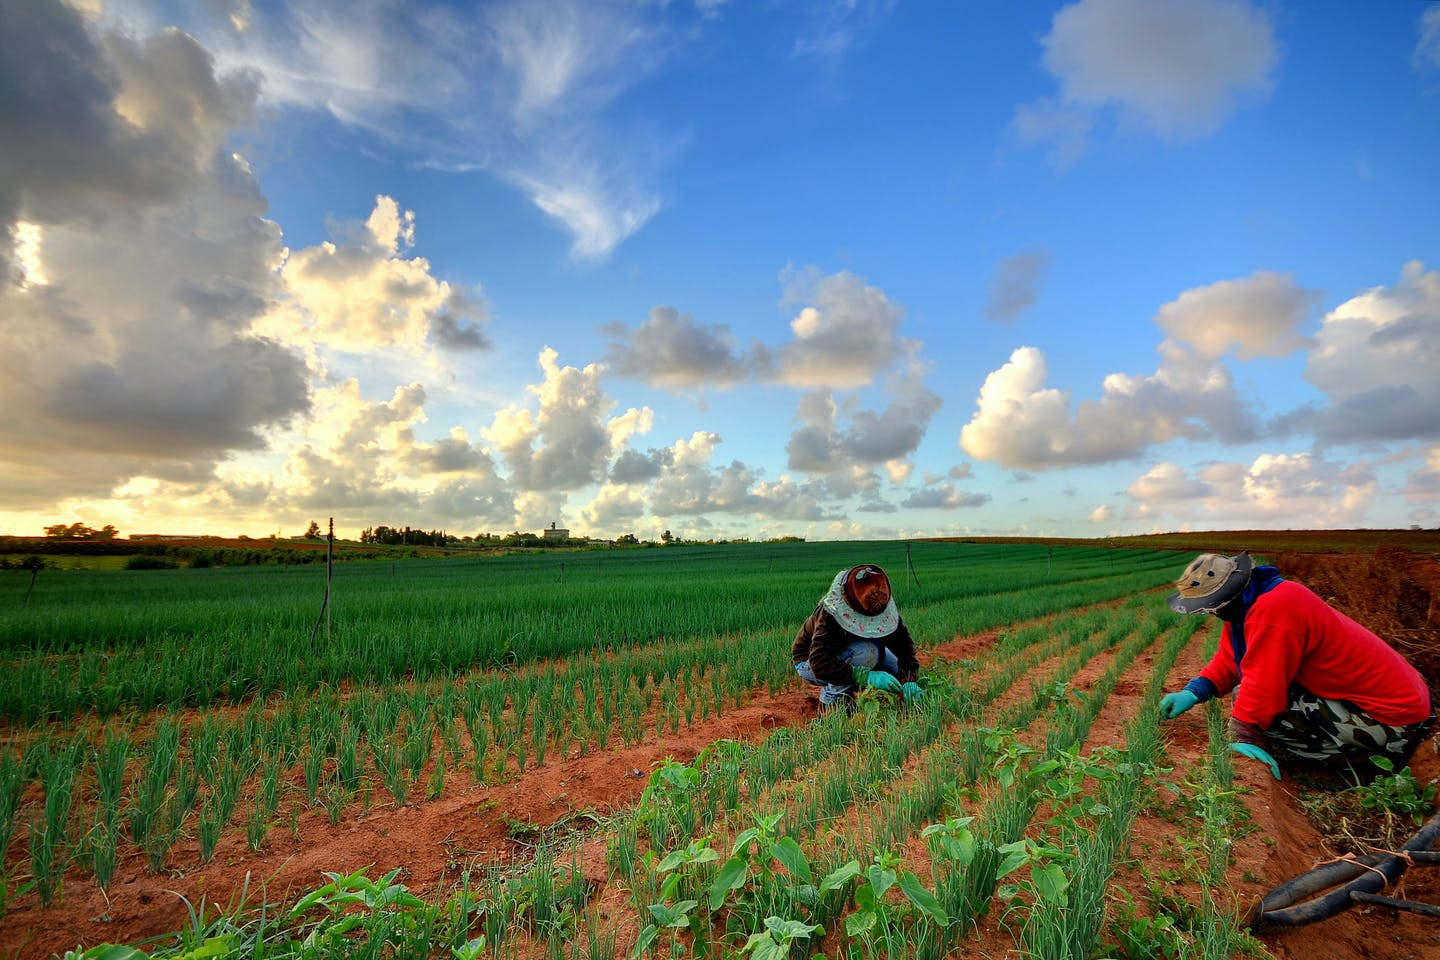 Thai workers weeding a field of chives.